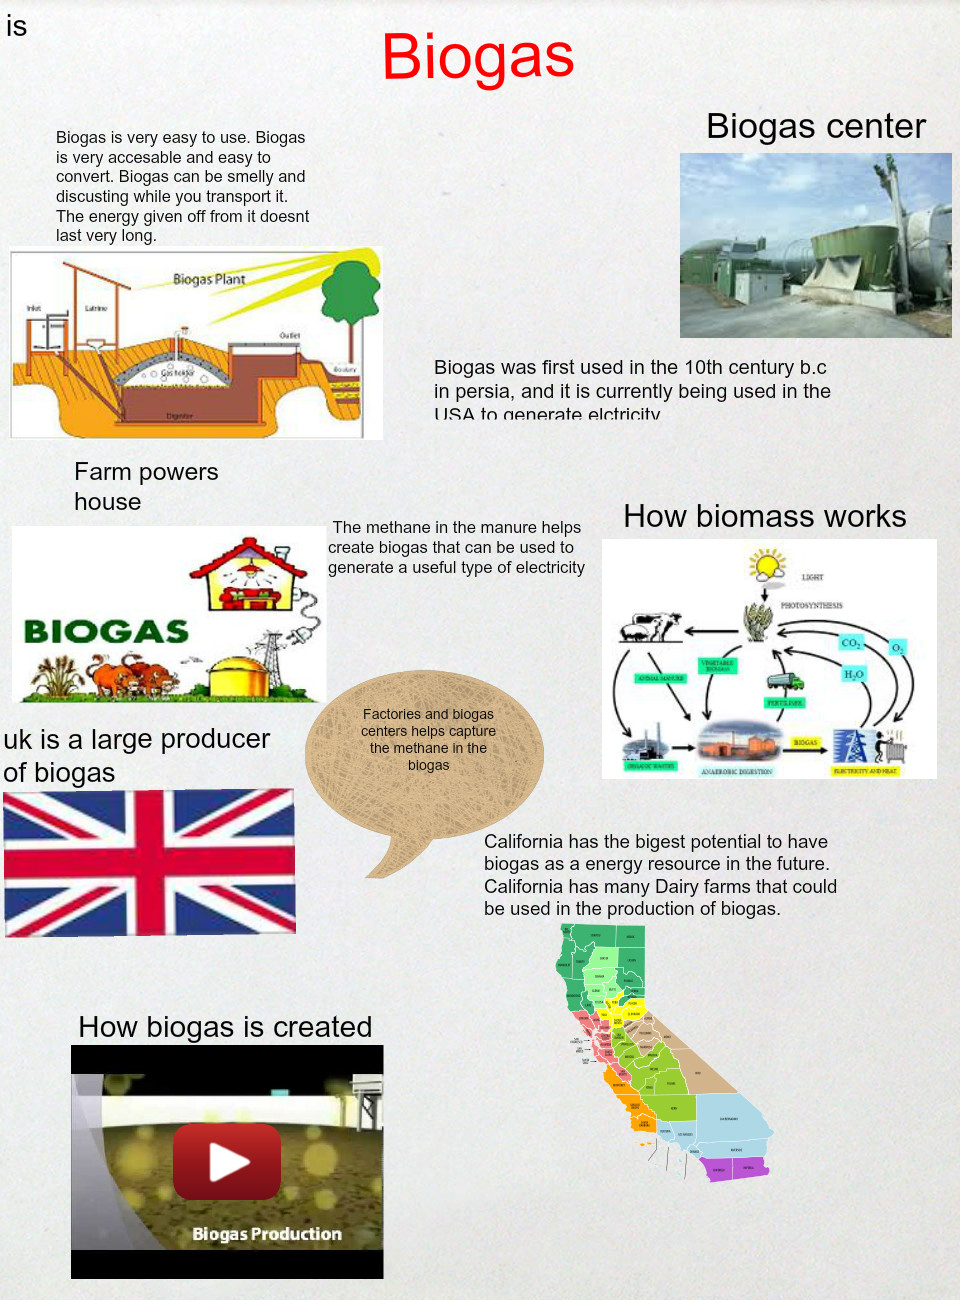 biogas, nick sanders: text, images, music, video | Glogster